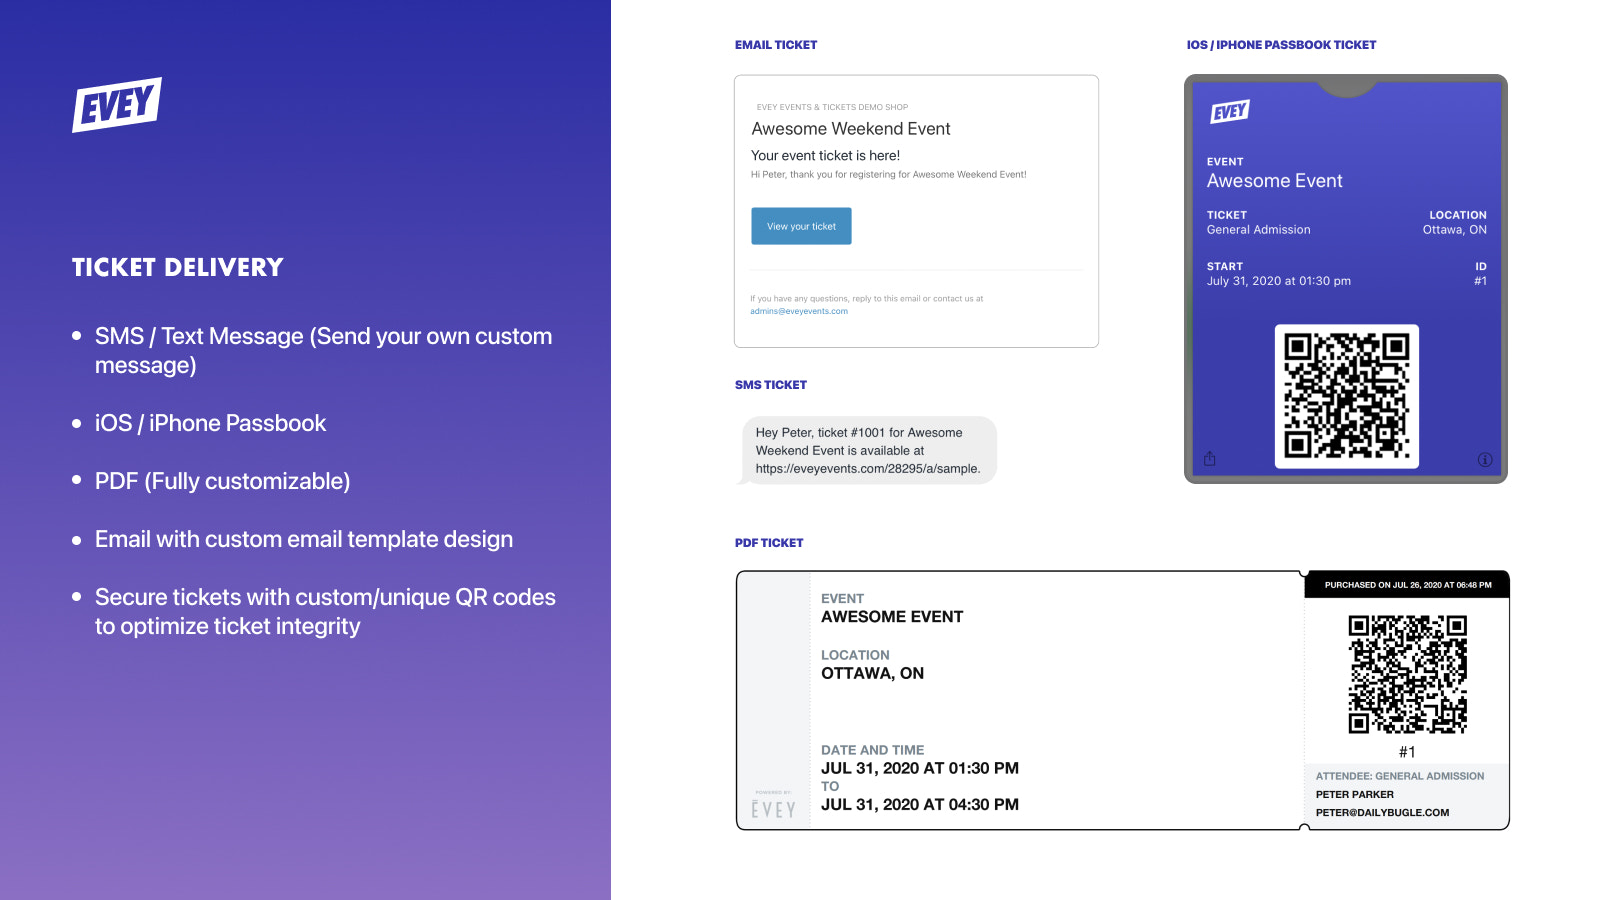 Ticket Delivery - SMS, PDF, iOS Wallet. Customize your tickets.